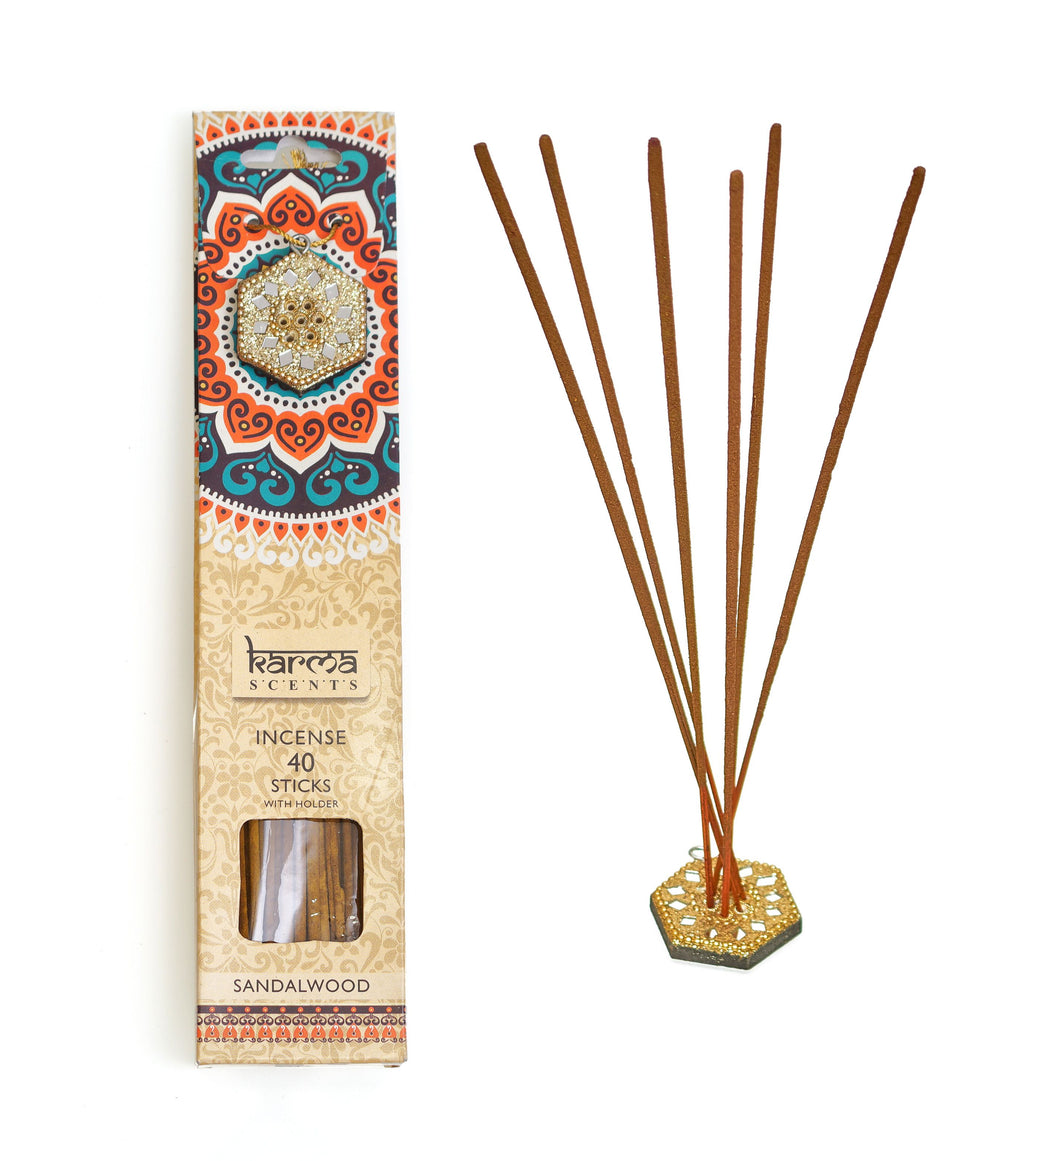 10 sticks of Citronella Incense - 20 inches long in Tube with cardboard PDQ CP 6 /72